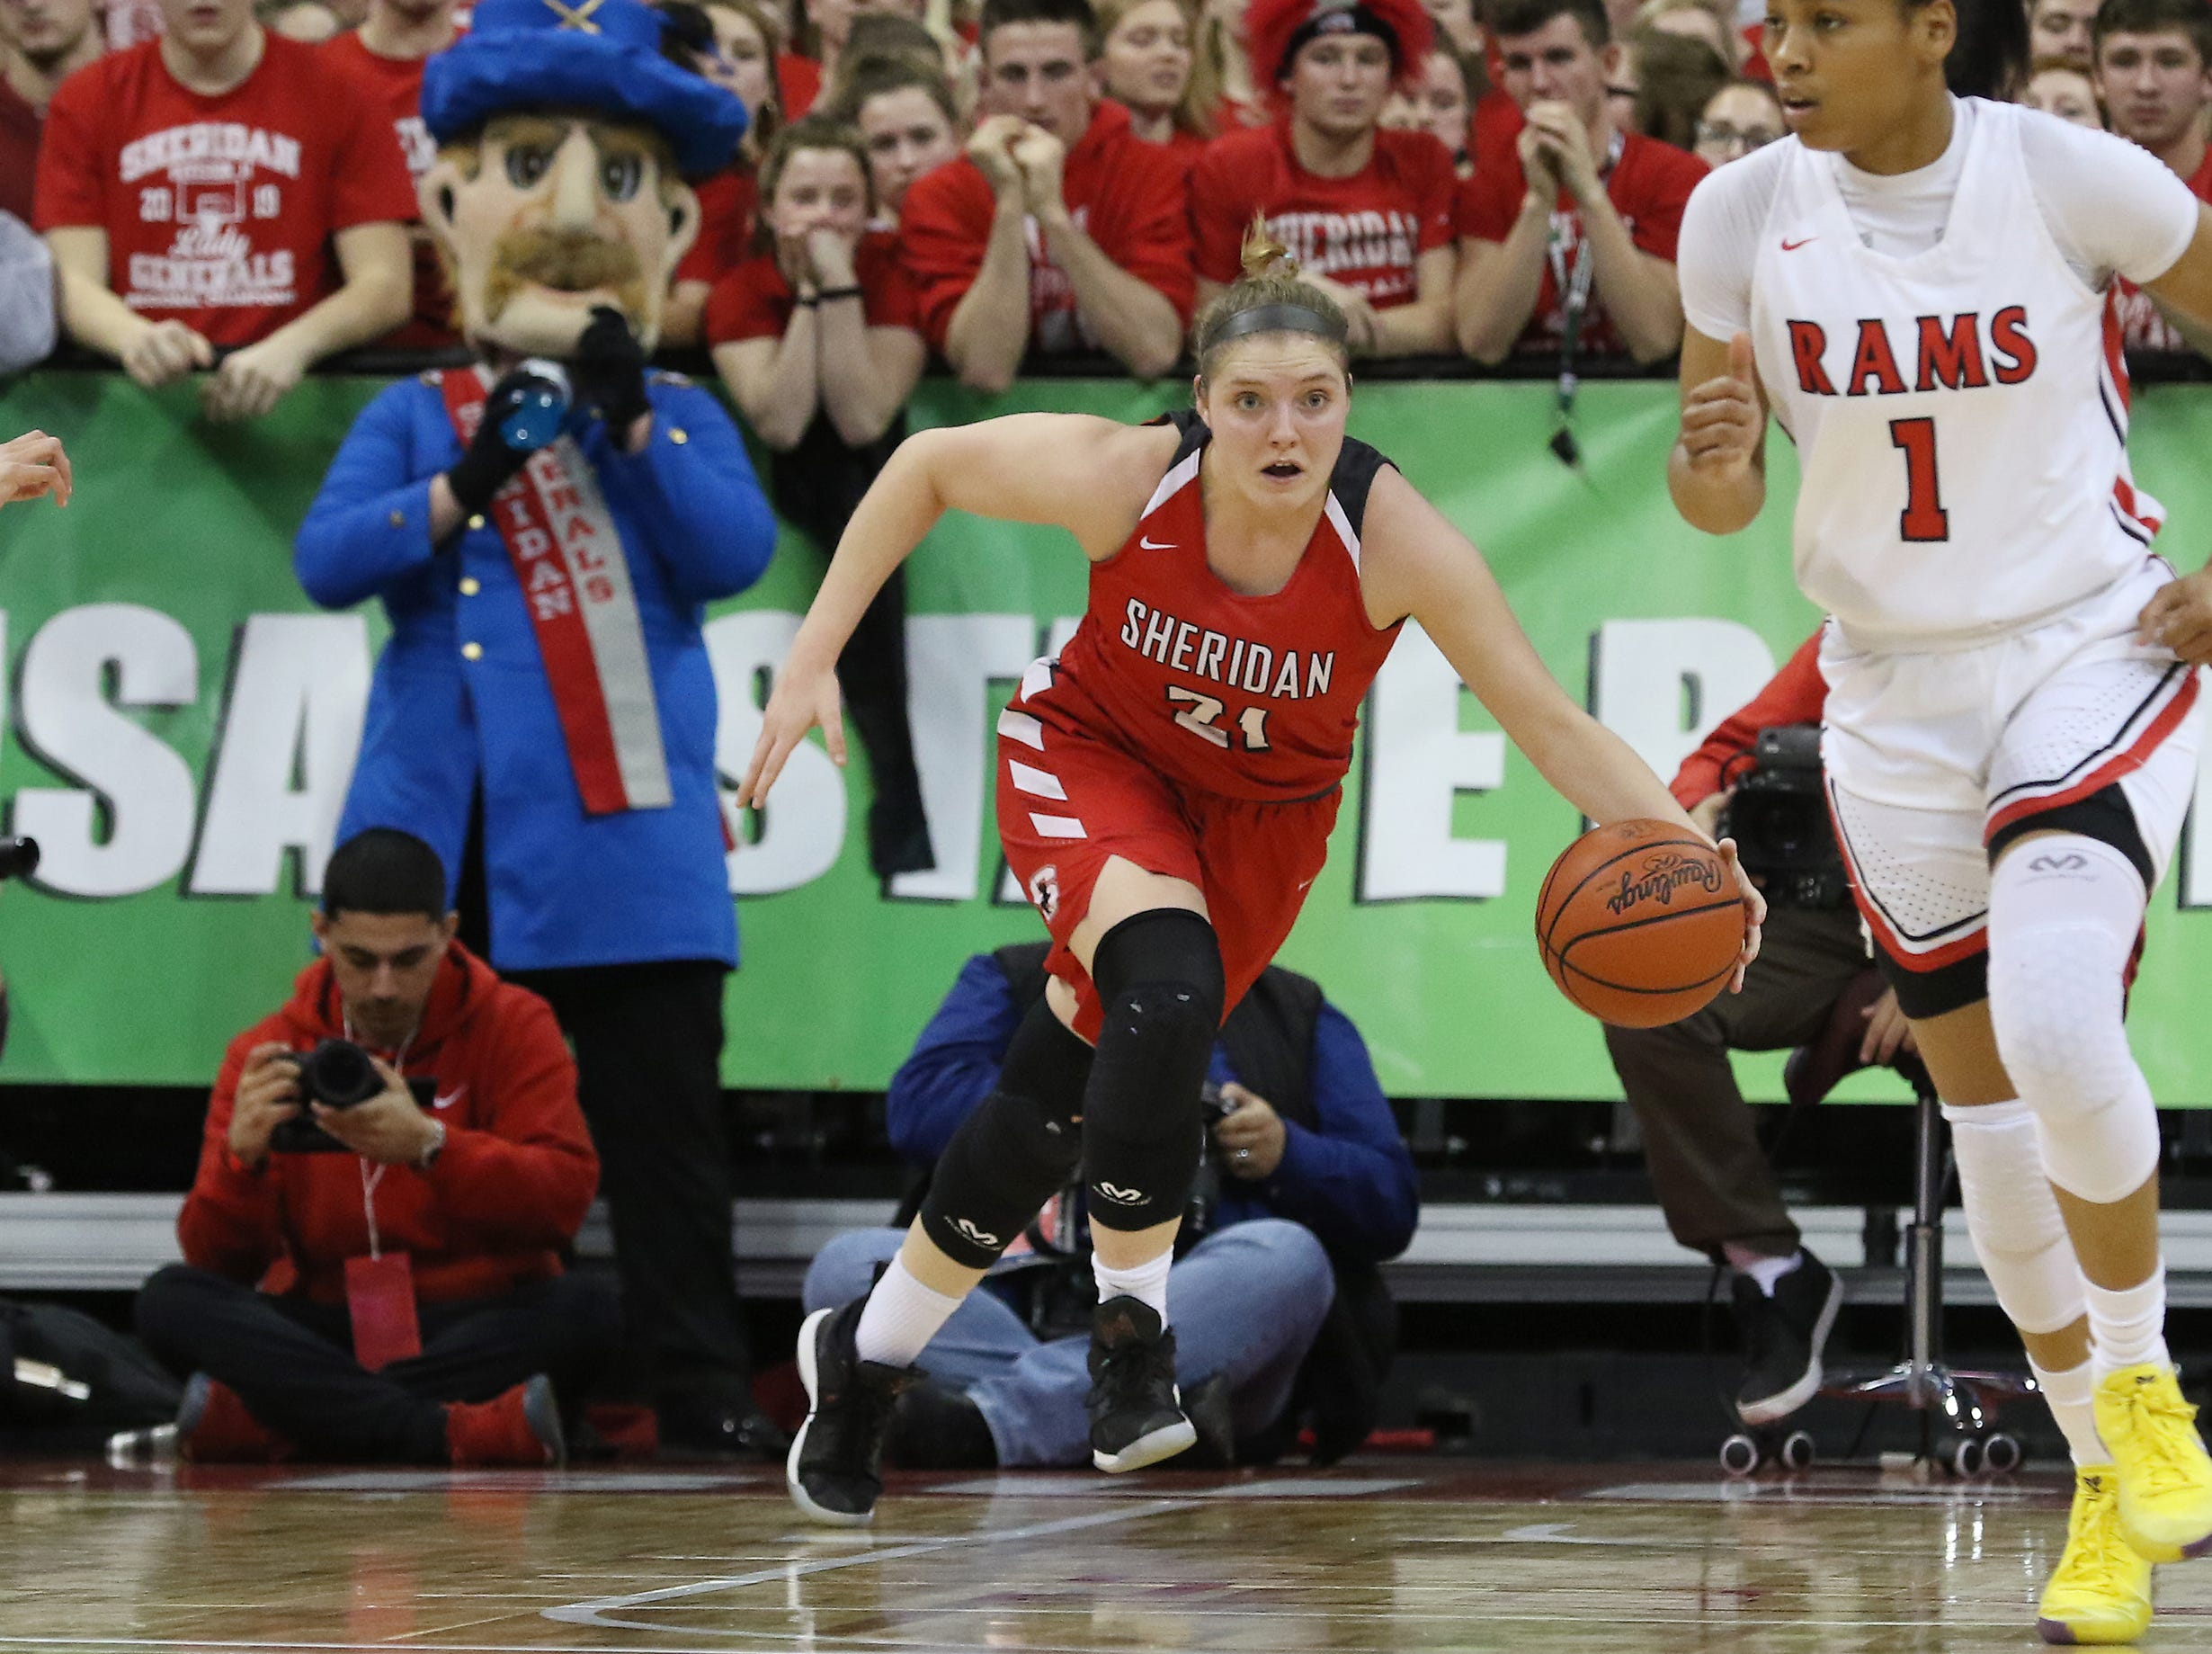 Sheridan's Kendyl Mick brings the ball up the court against Toledo Rogers during the DII state semis in Columbus on Thursday.